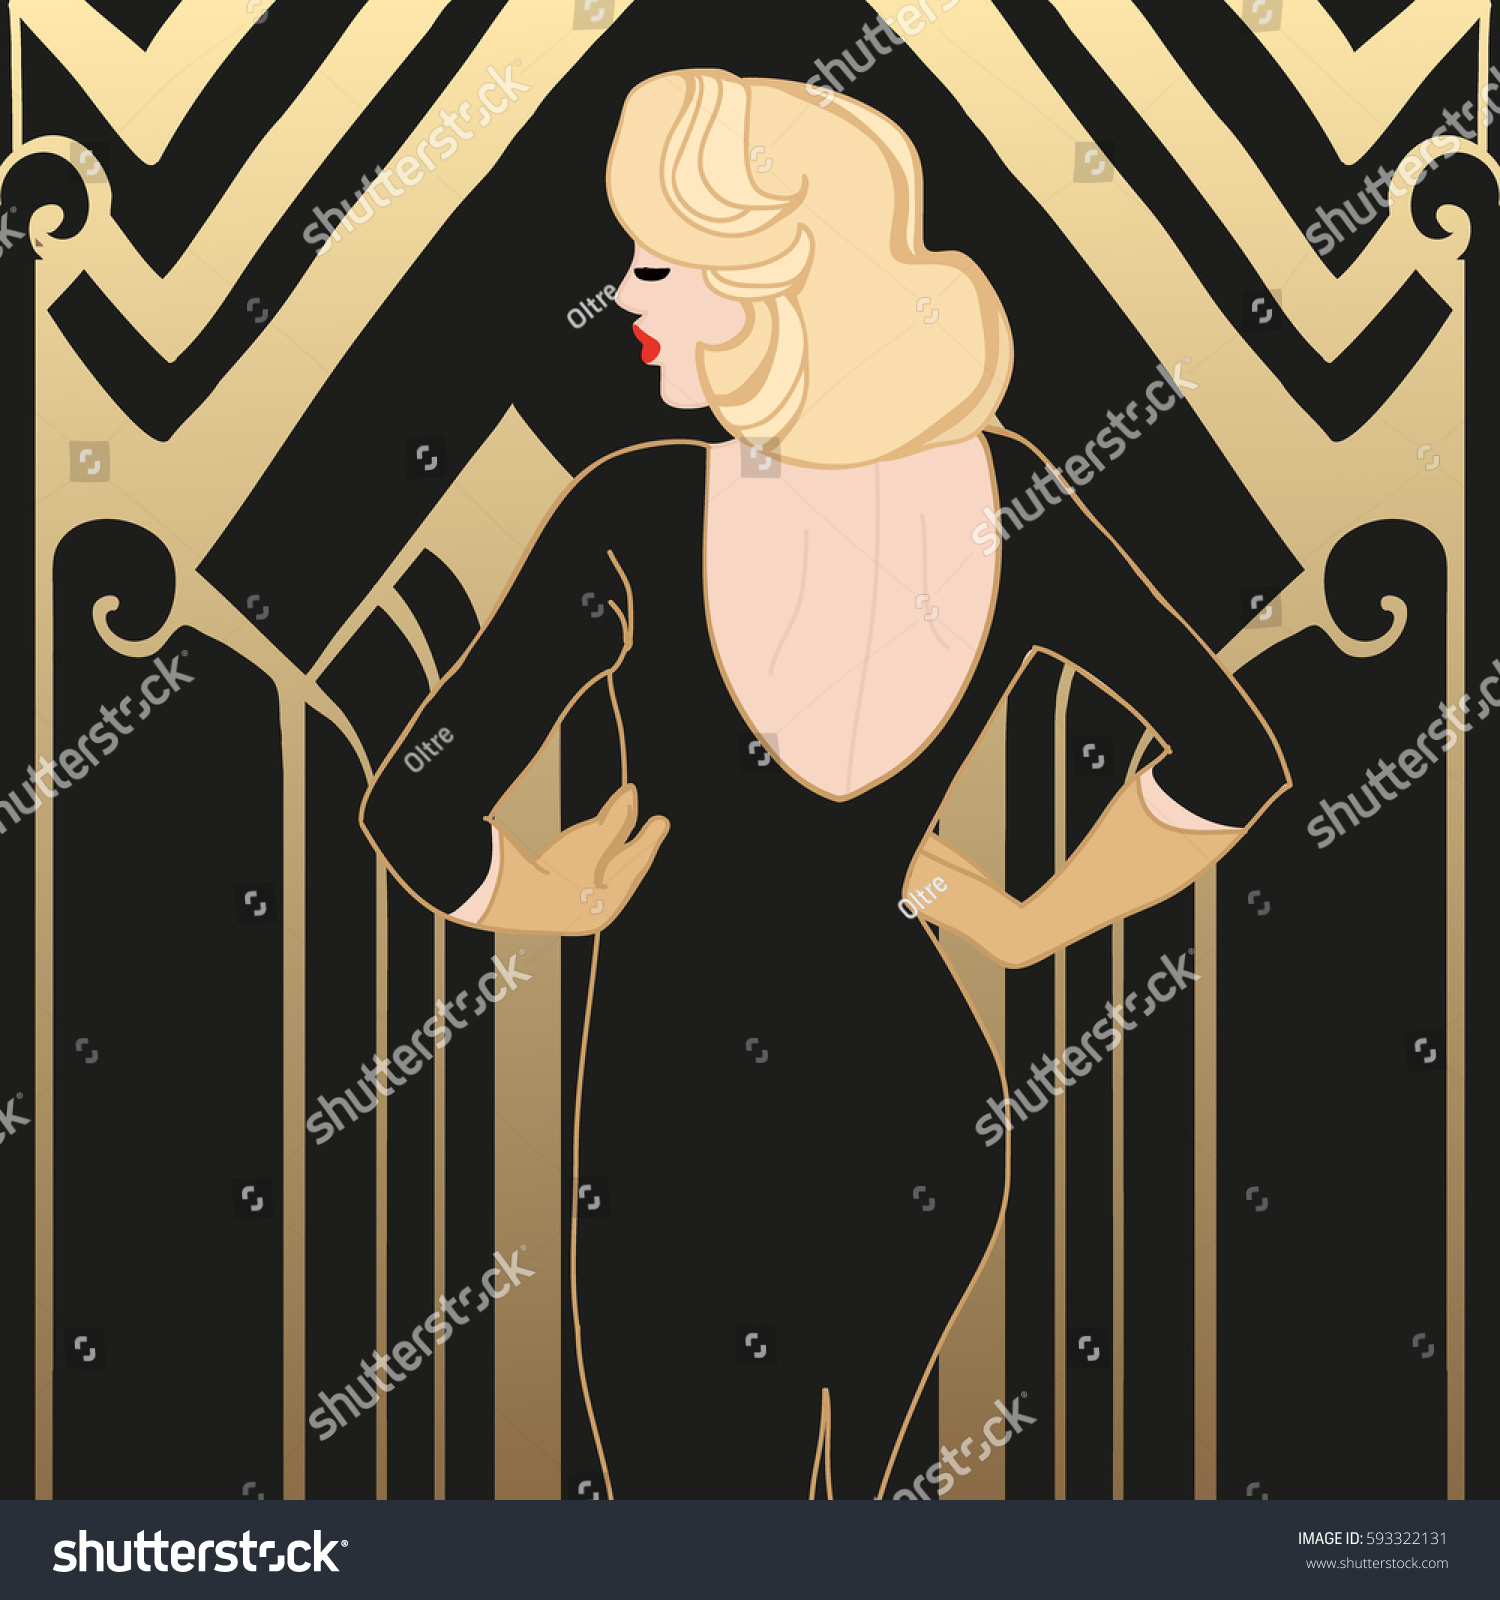 flapper girl pretty woman great gatsby stock vector. Black Bedroom Furniture Sets. Home Design Ideas